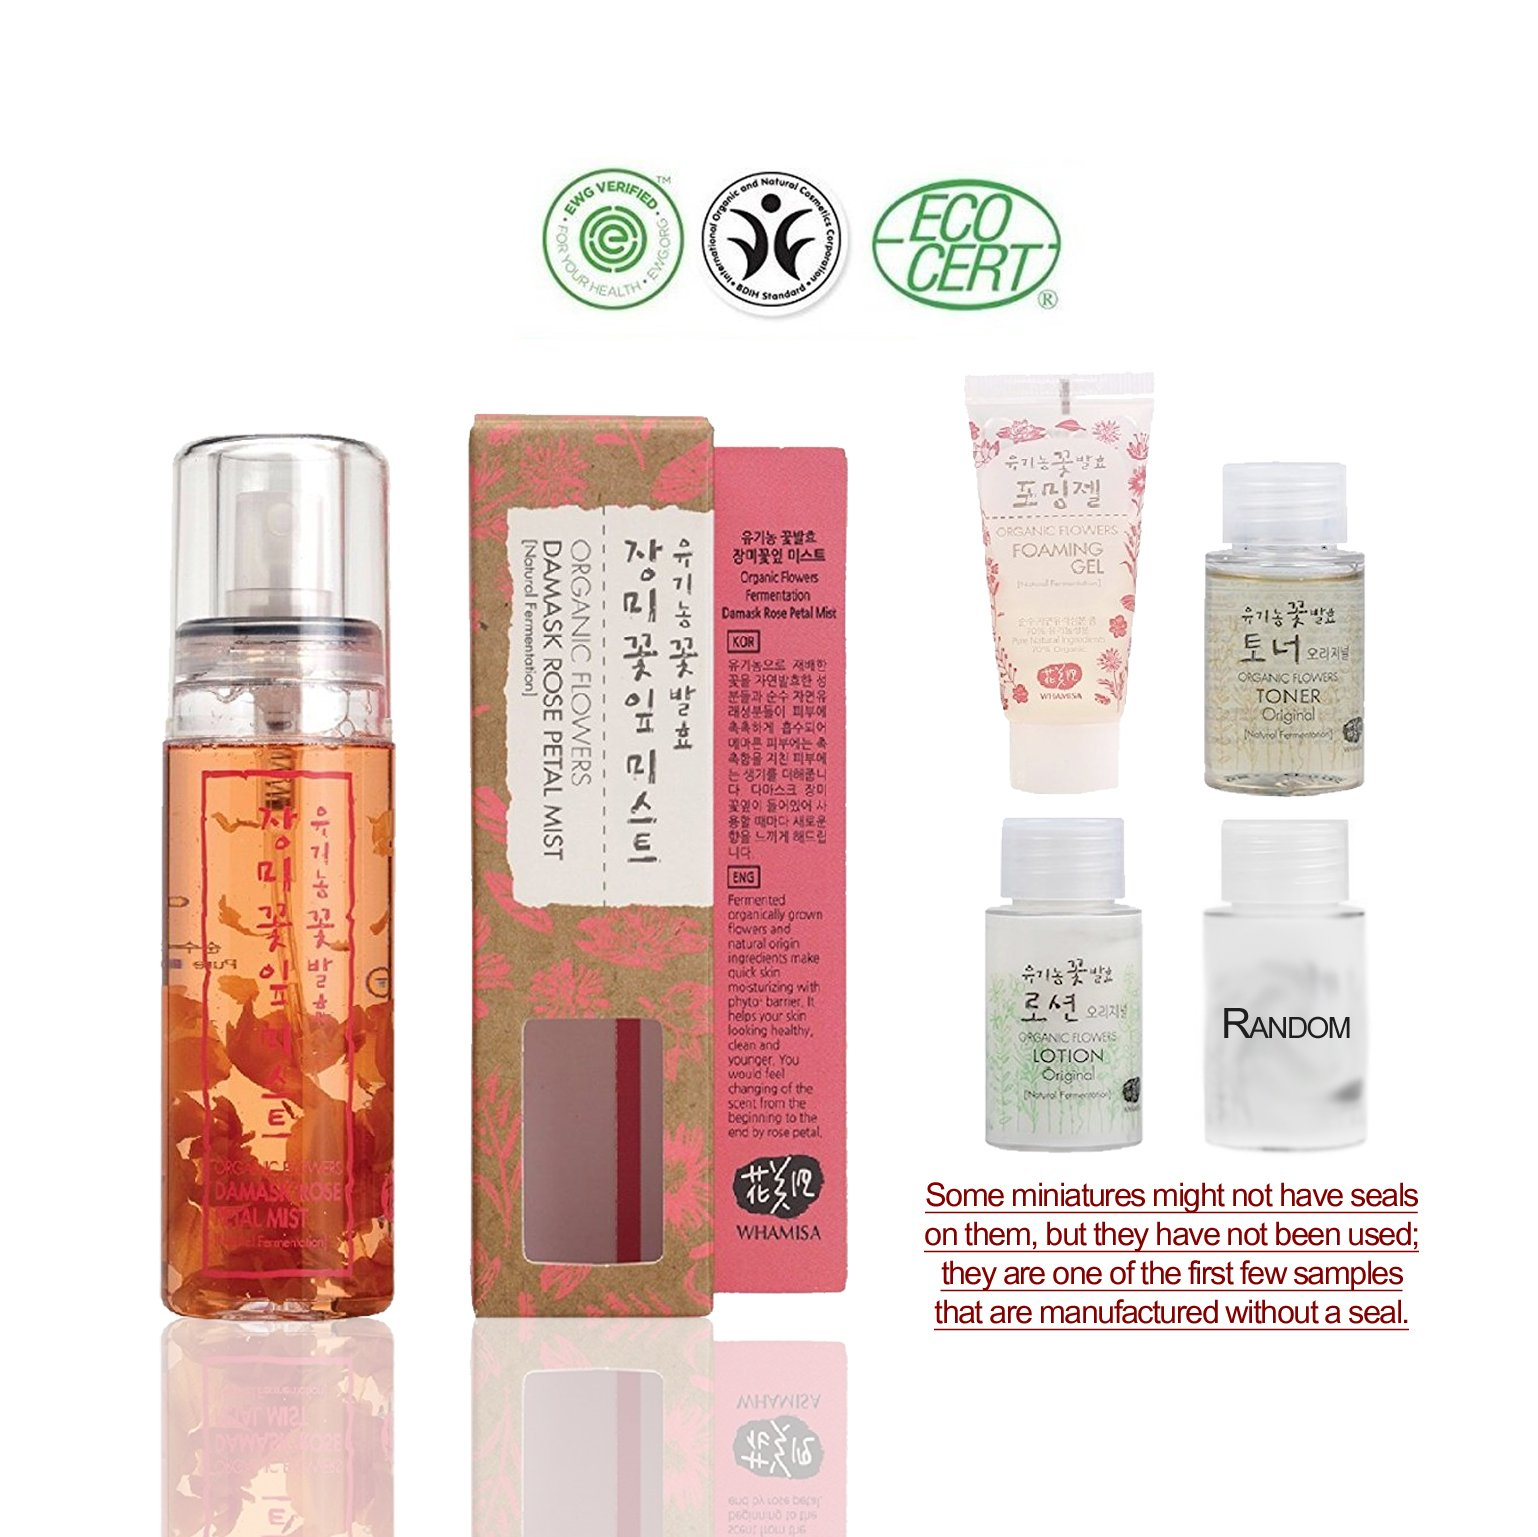 Whamisa [ Skin Care Kit ] Organic Flowers Damask Rose Petal Mist 80ml / Original Toner and Lotion 20ml each / Foaming Gel 20ml / Random 1 Miniature - Naturally fermented, EWG Verified | BDIH Certifed